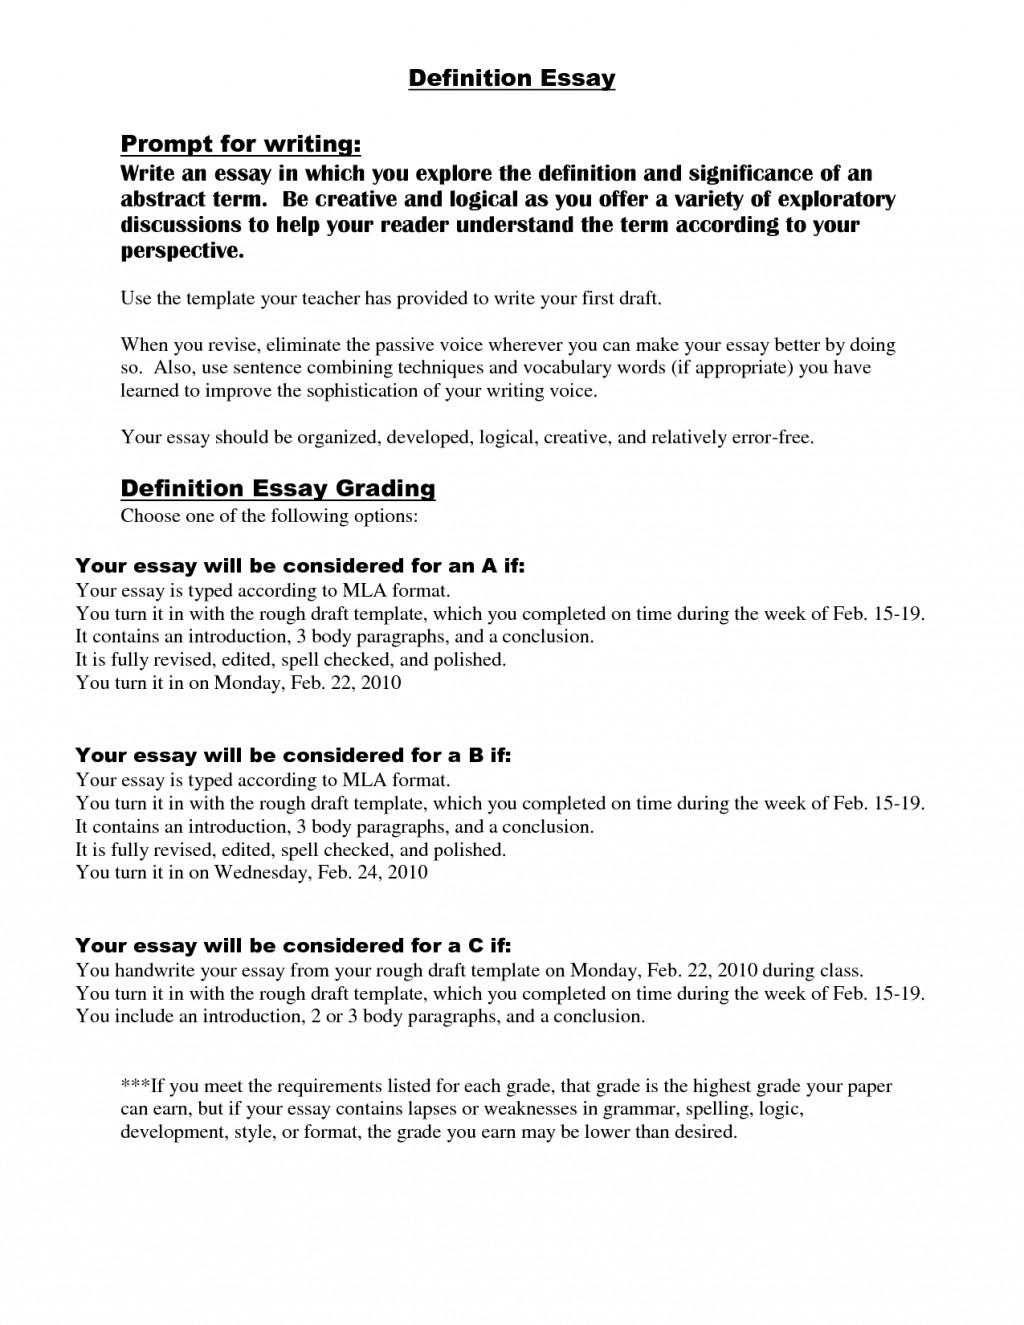 009 Essay Example Ideas Of Cover Letter Writing Definition Examples Great Outline Ib Striking Topics For High School Creative Large